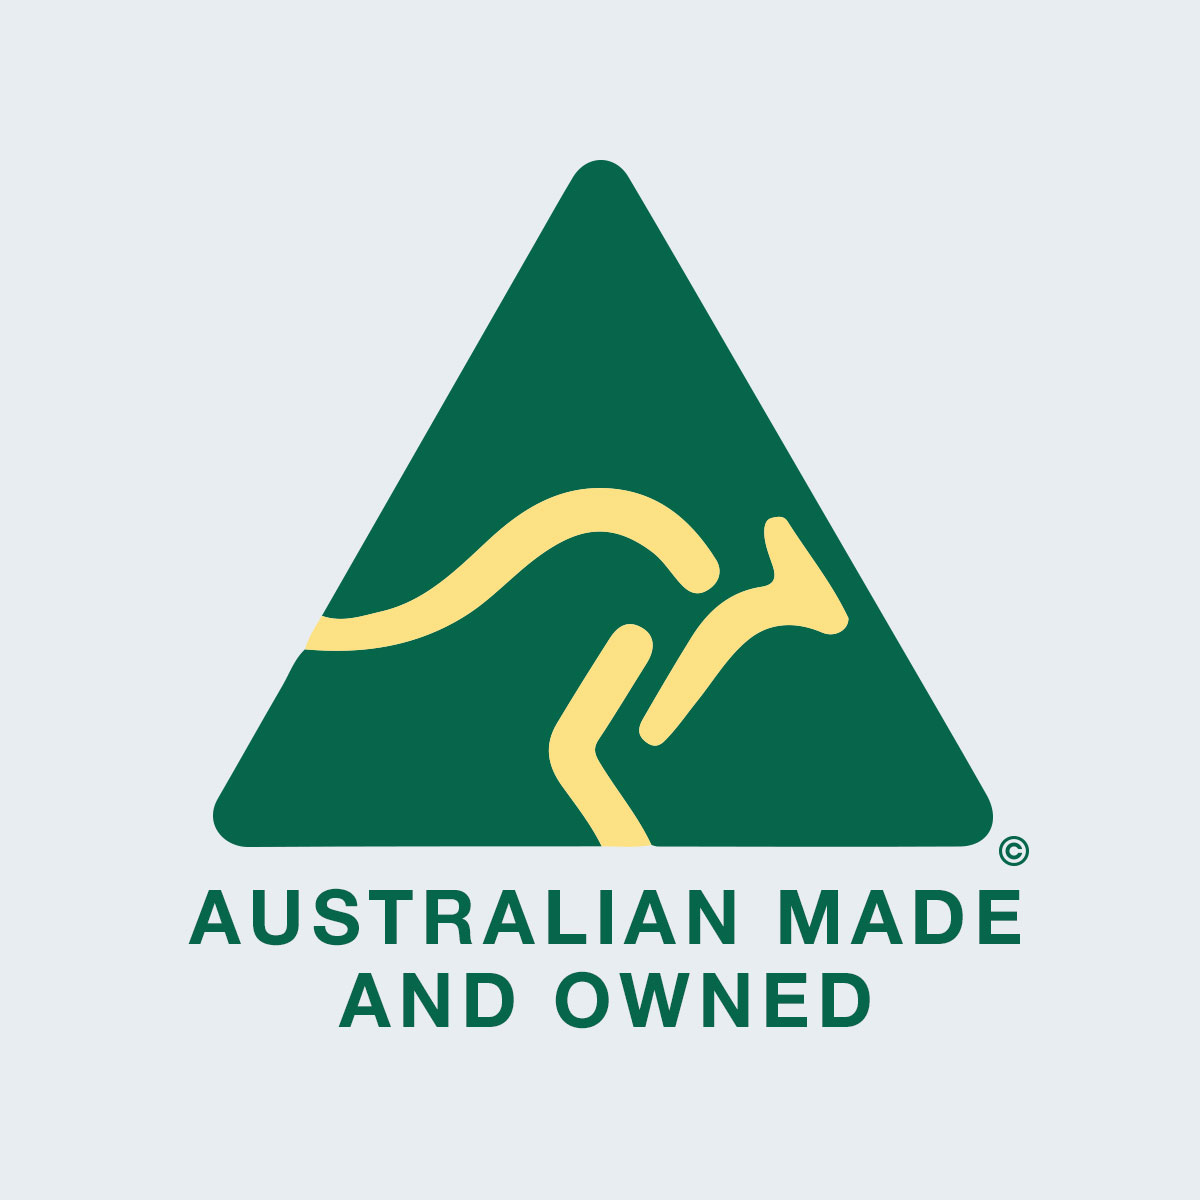 australian owned and made2